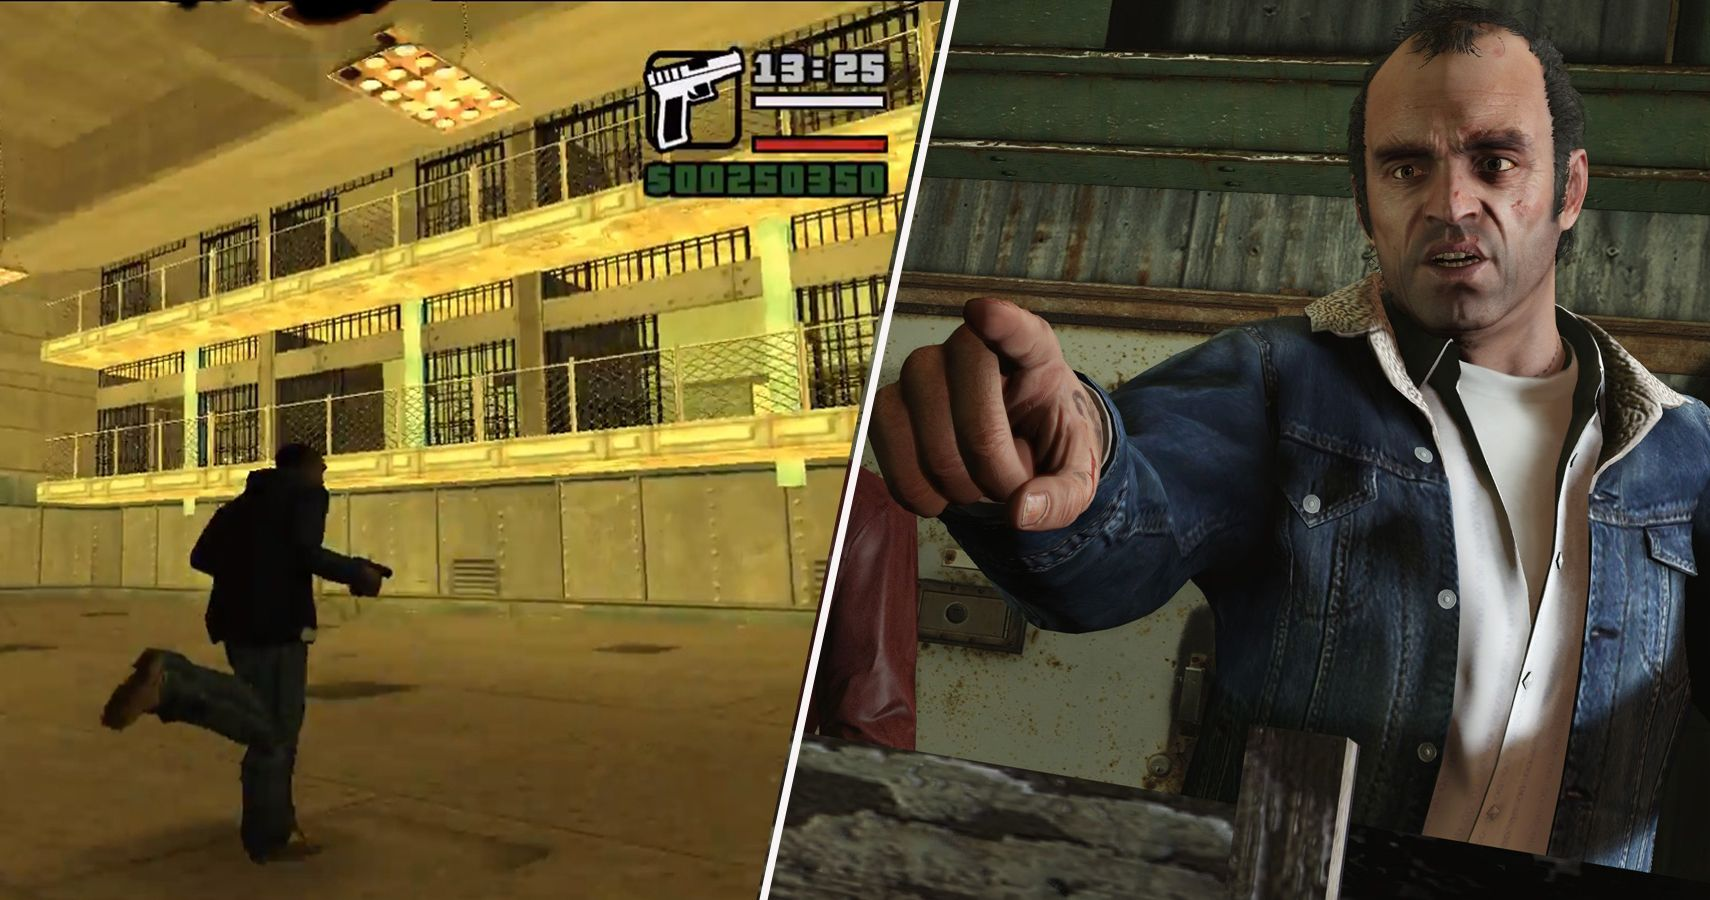 24 Epic Things They Deleted From Grand Theft Auto (But Fans Found